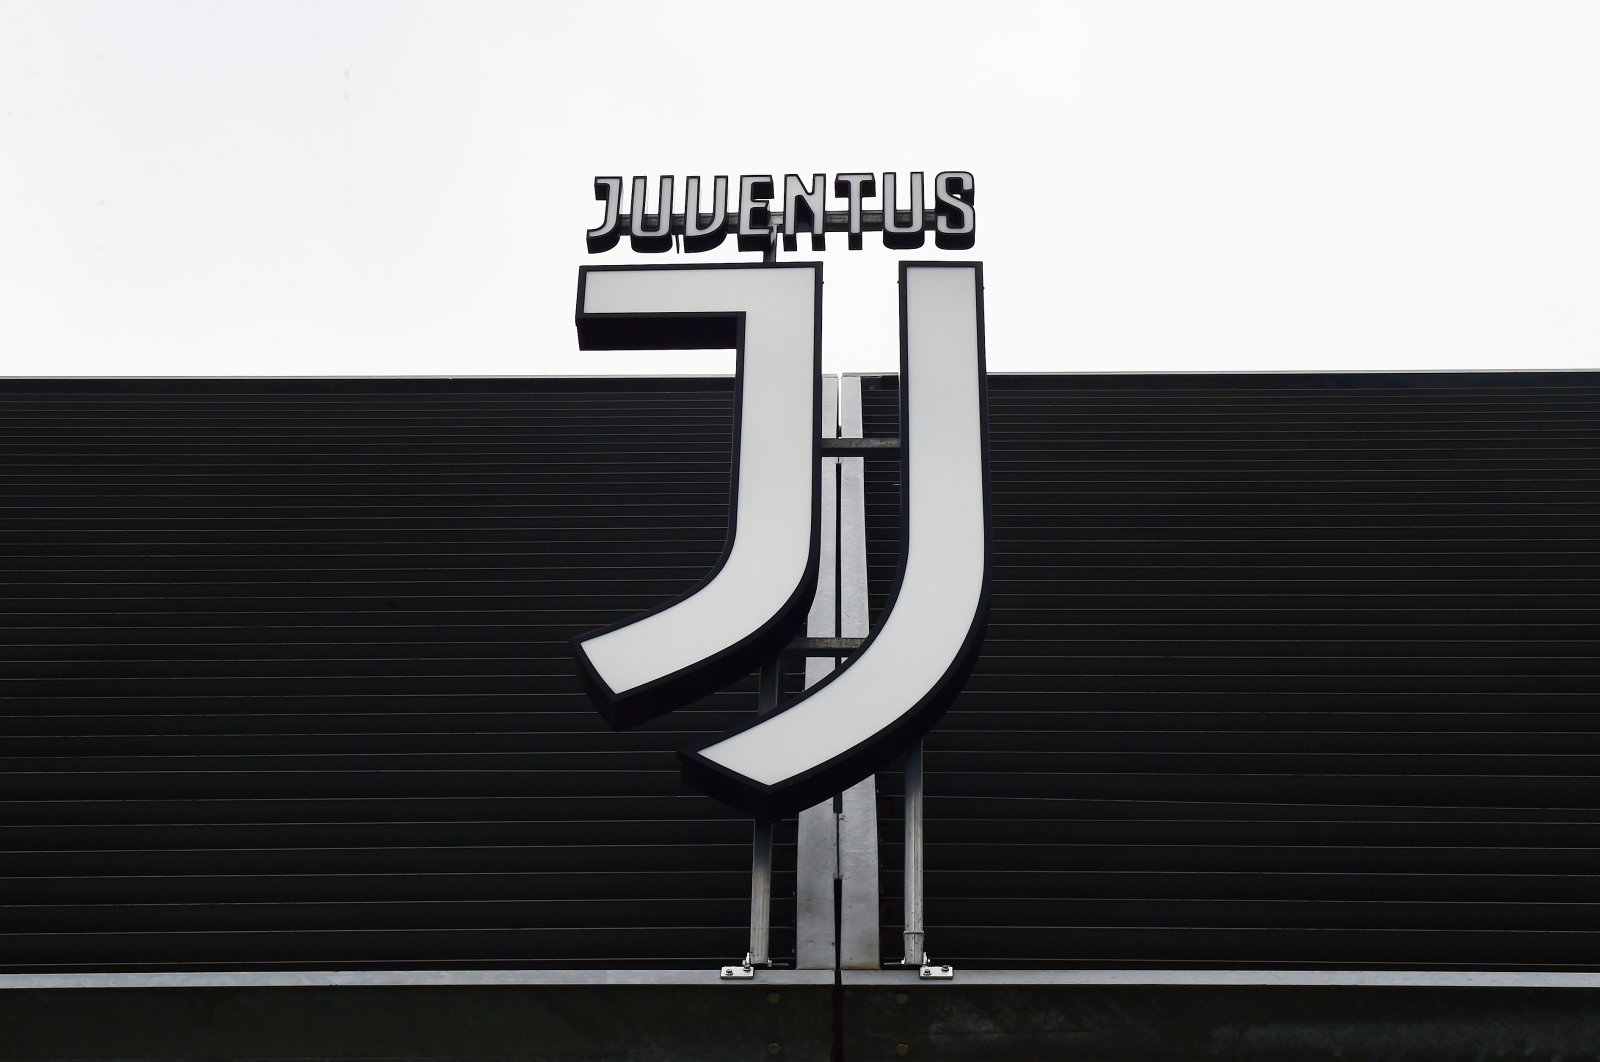 The Juventus club crest seen outside Allianz Stadium in Turin, Italy, March 12, 2020. (Reuters Photo)